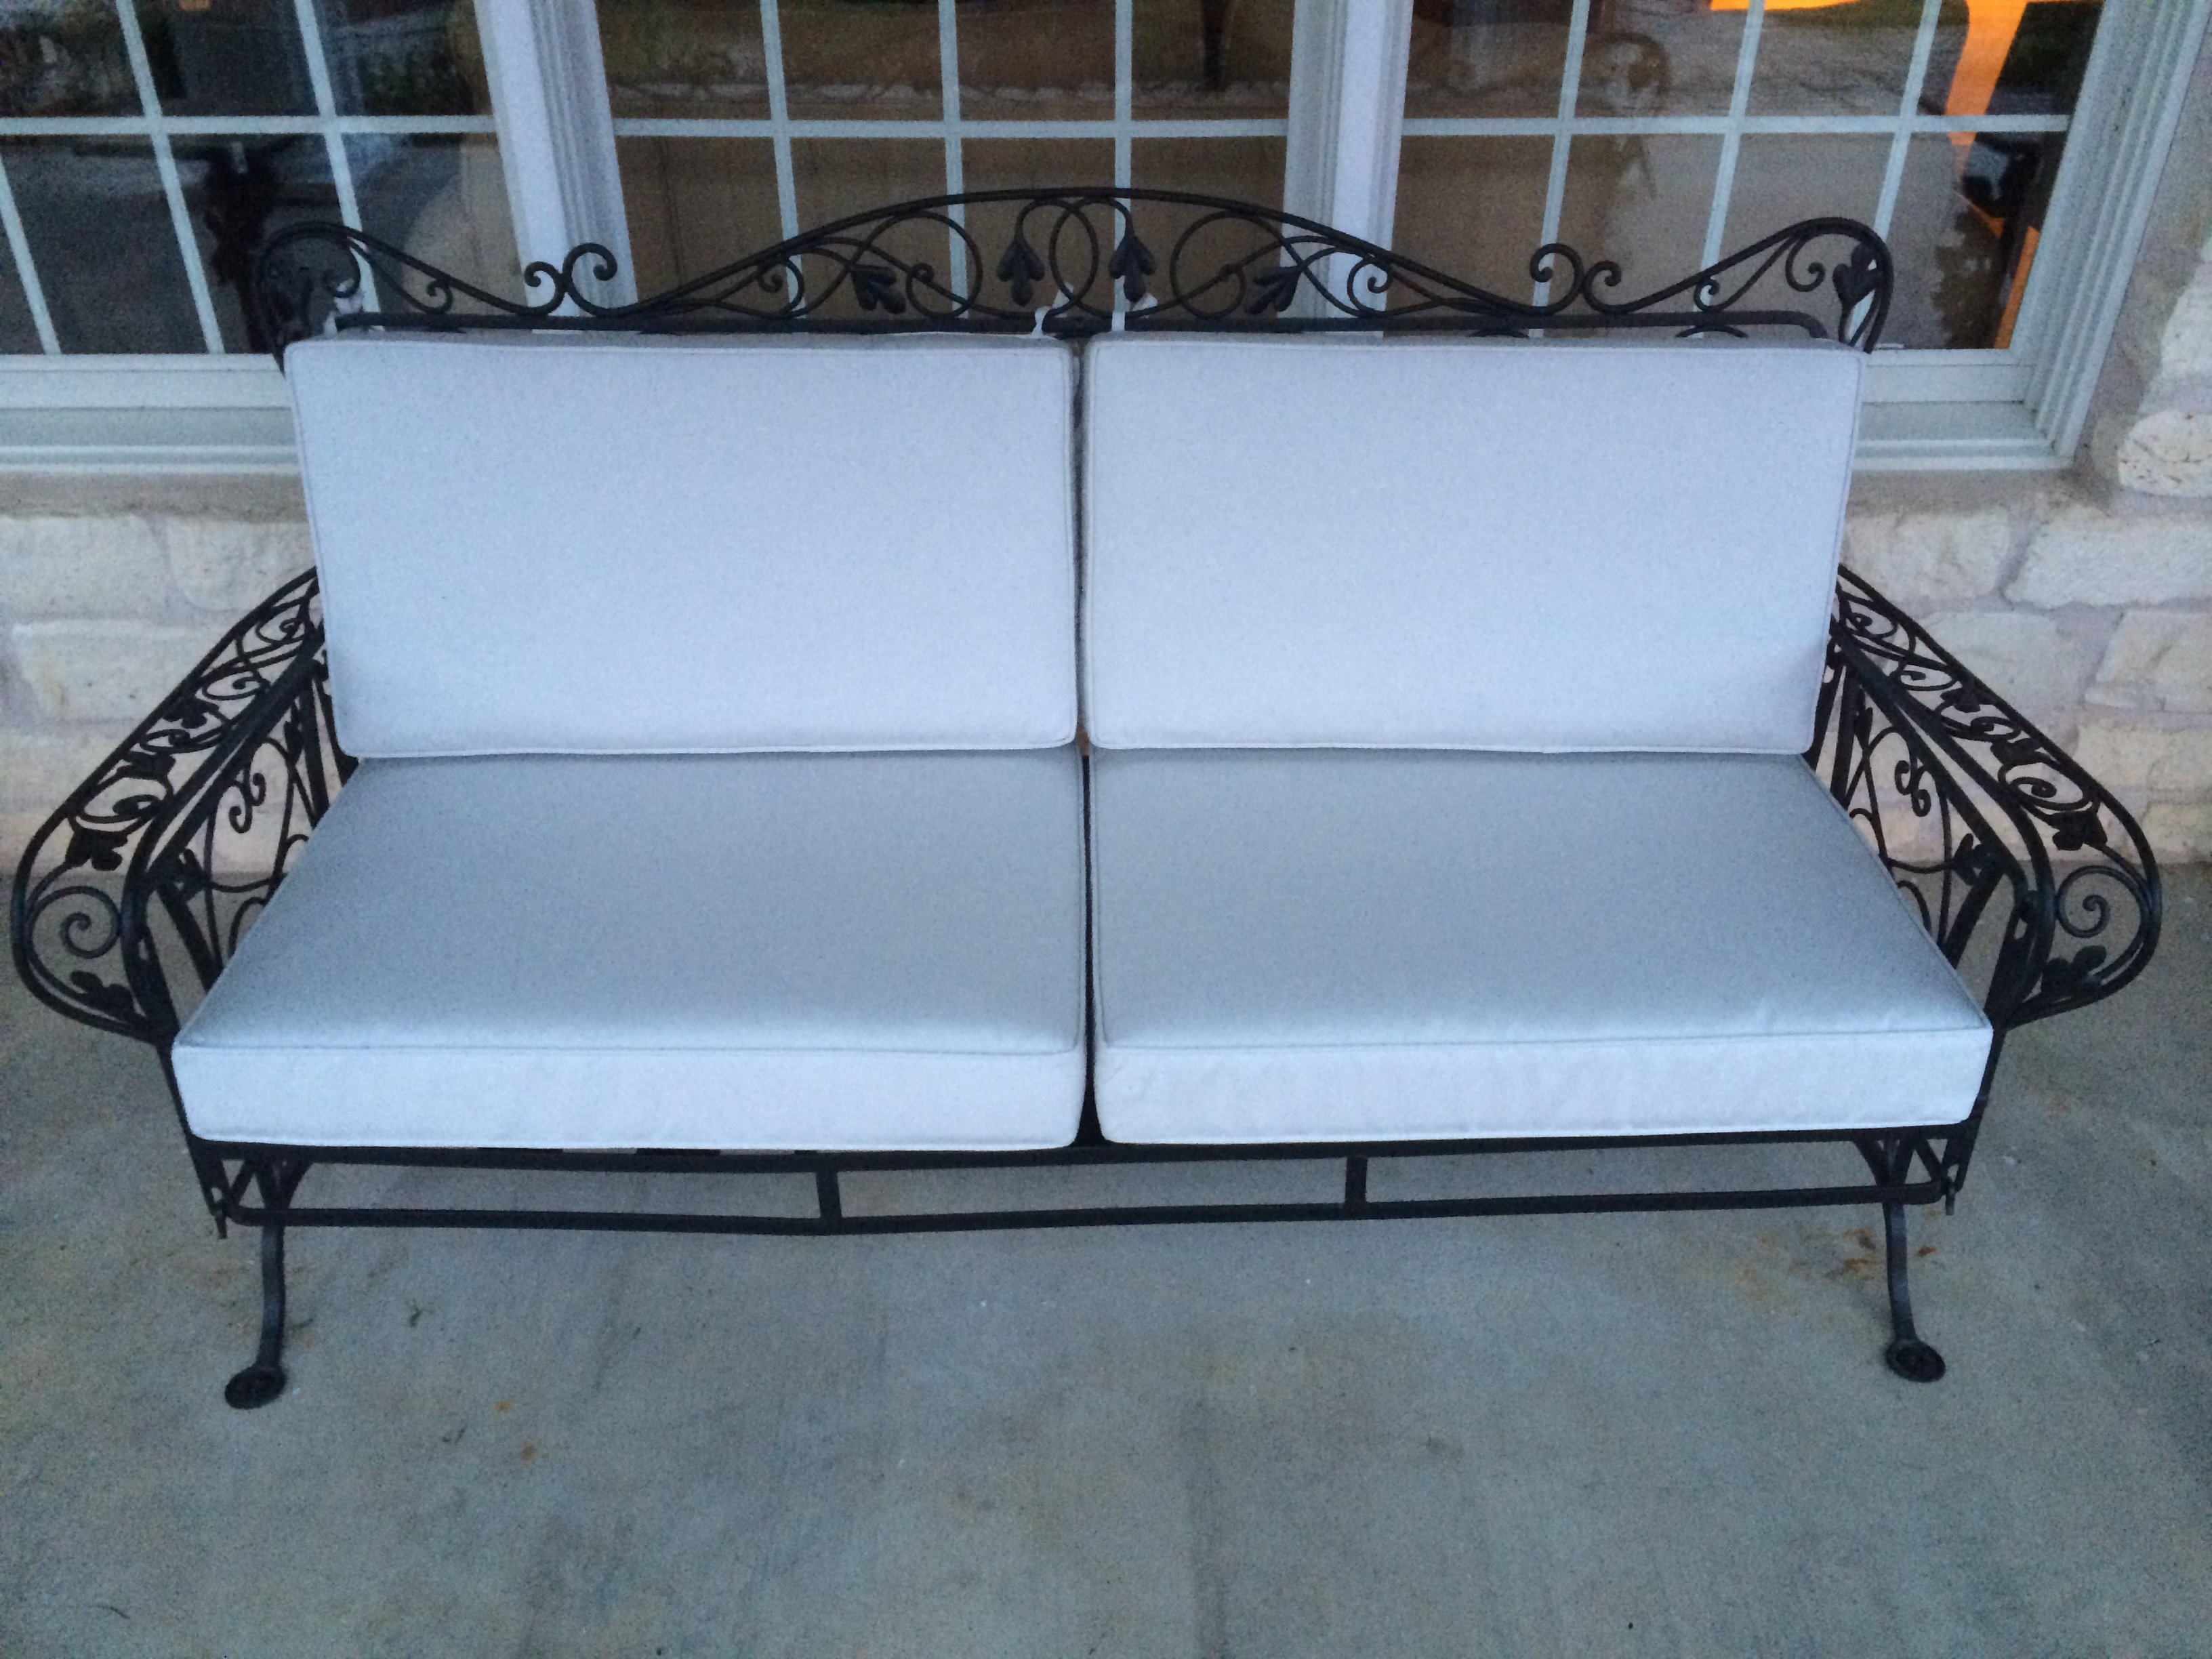 Outdoor Living And Recreation Links: New Furniture